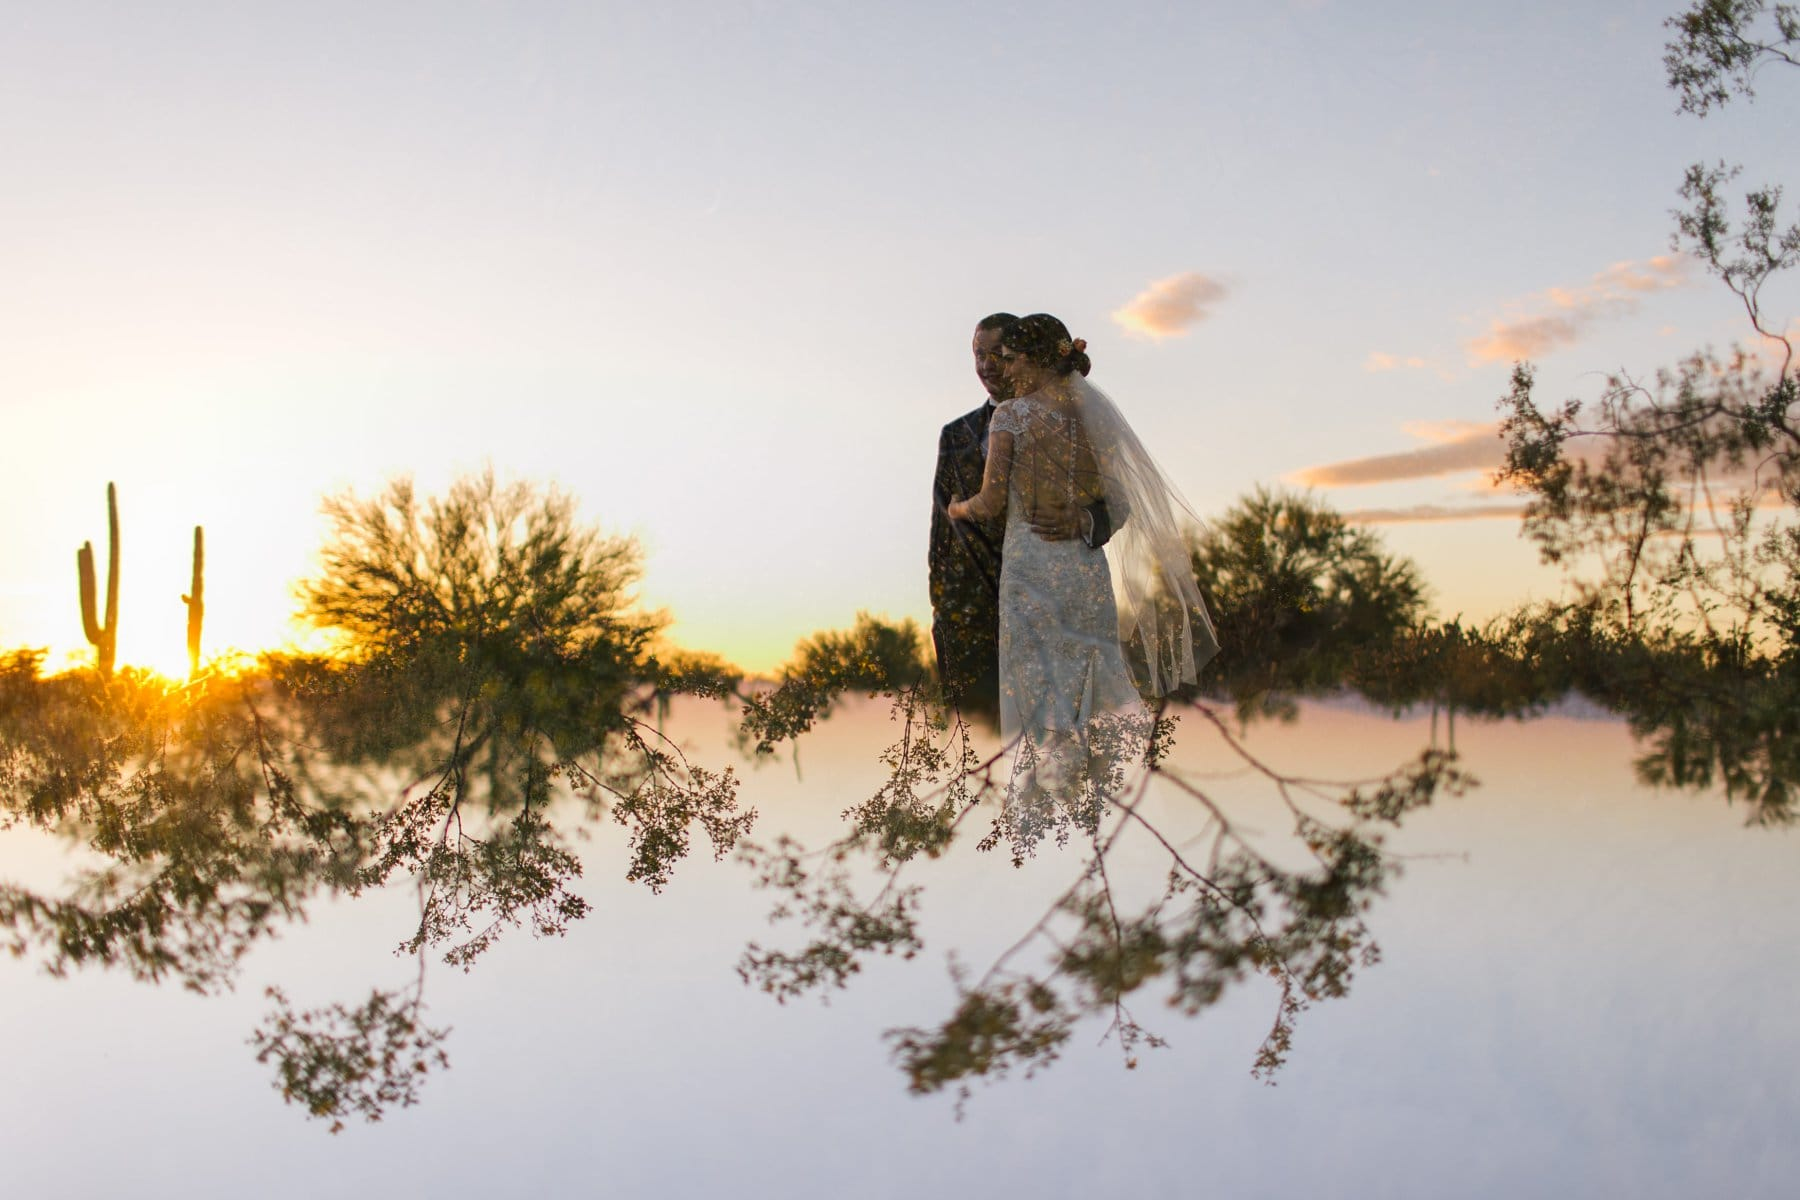 creative double exposure of desert and bride & groom Desert Foothills Wedding Venue